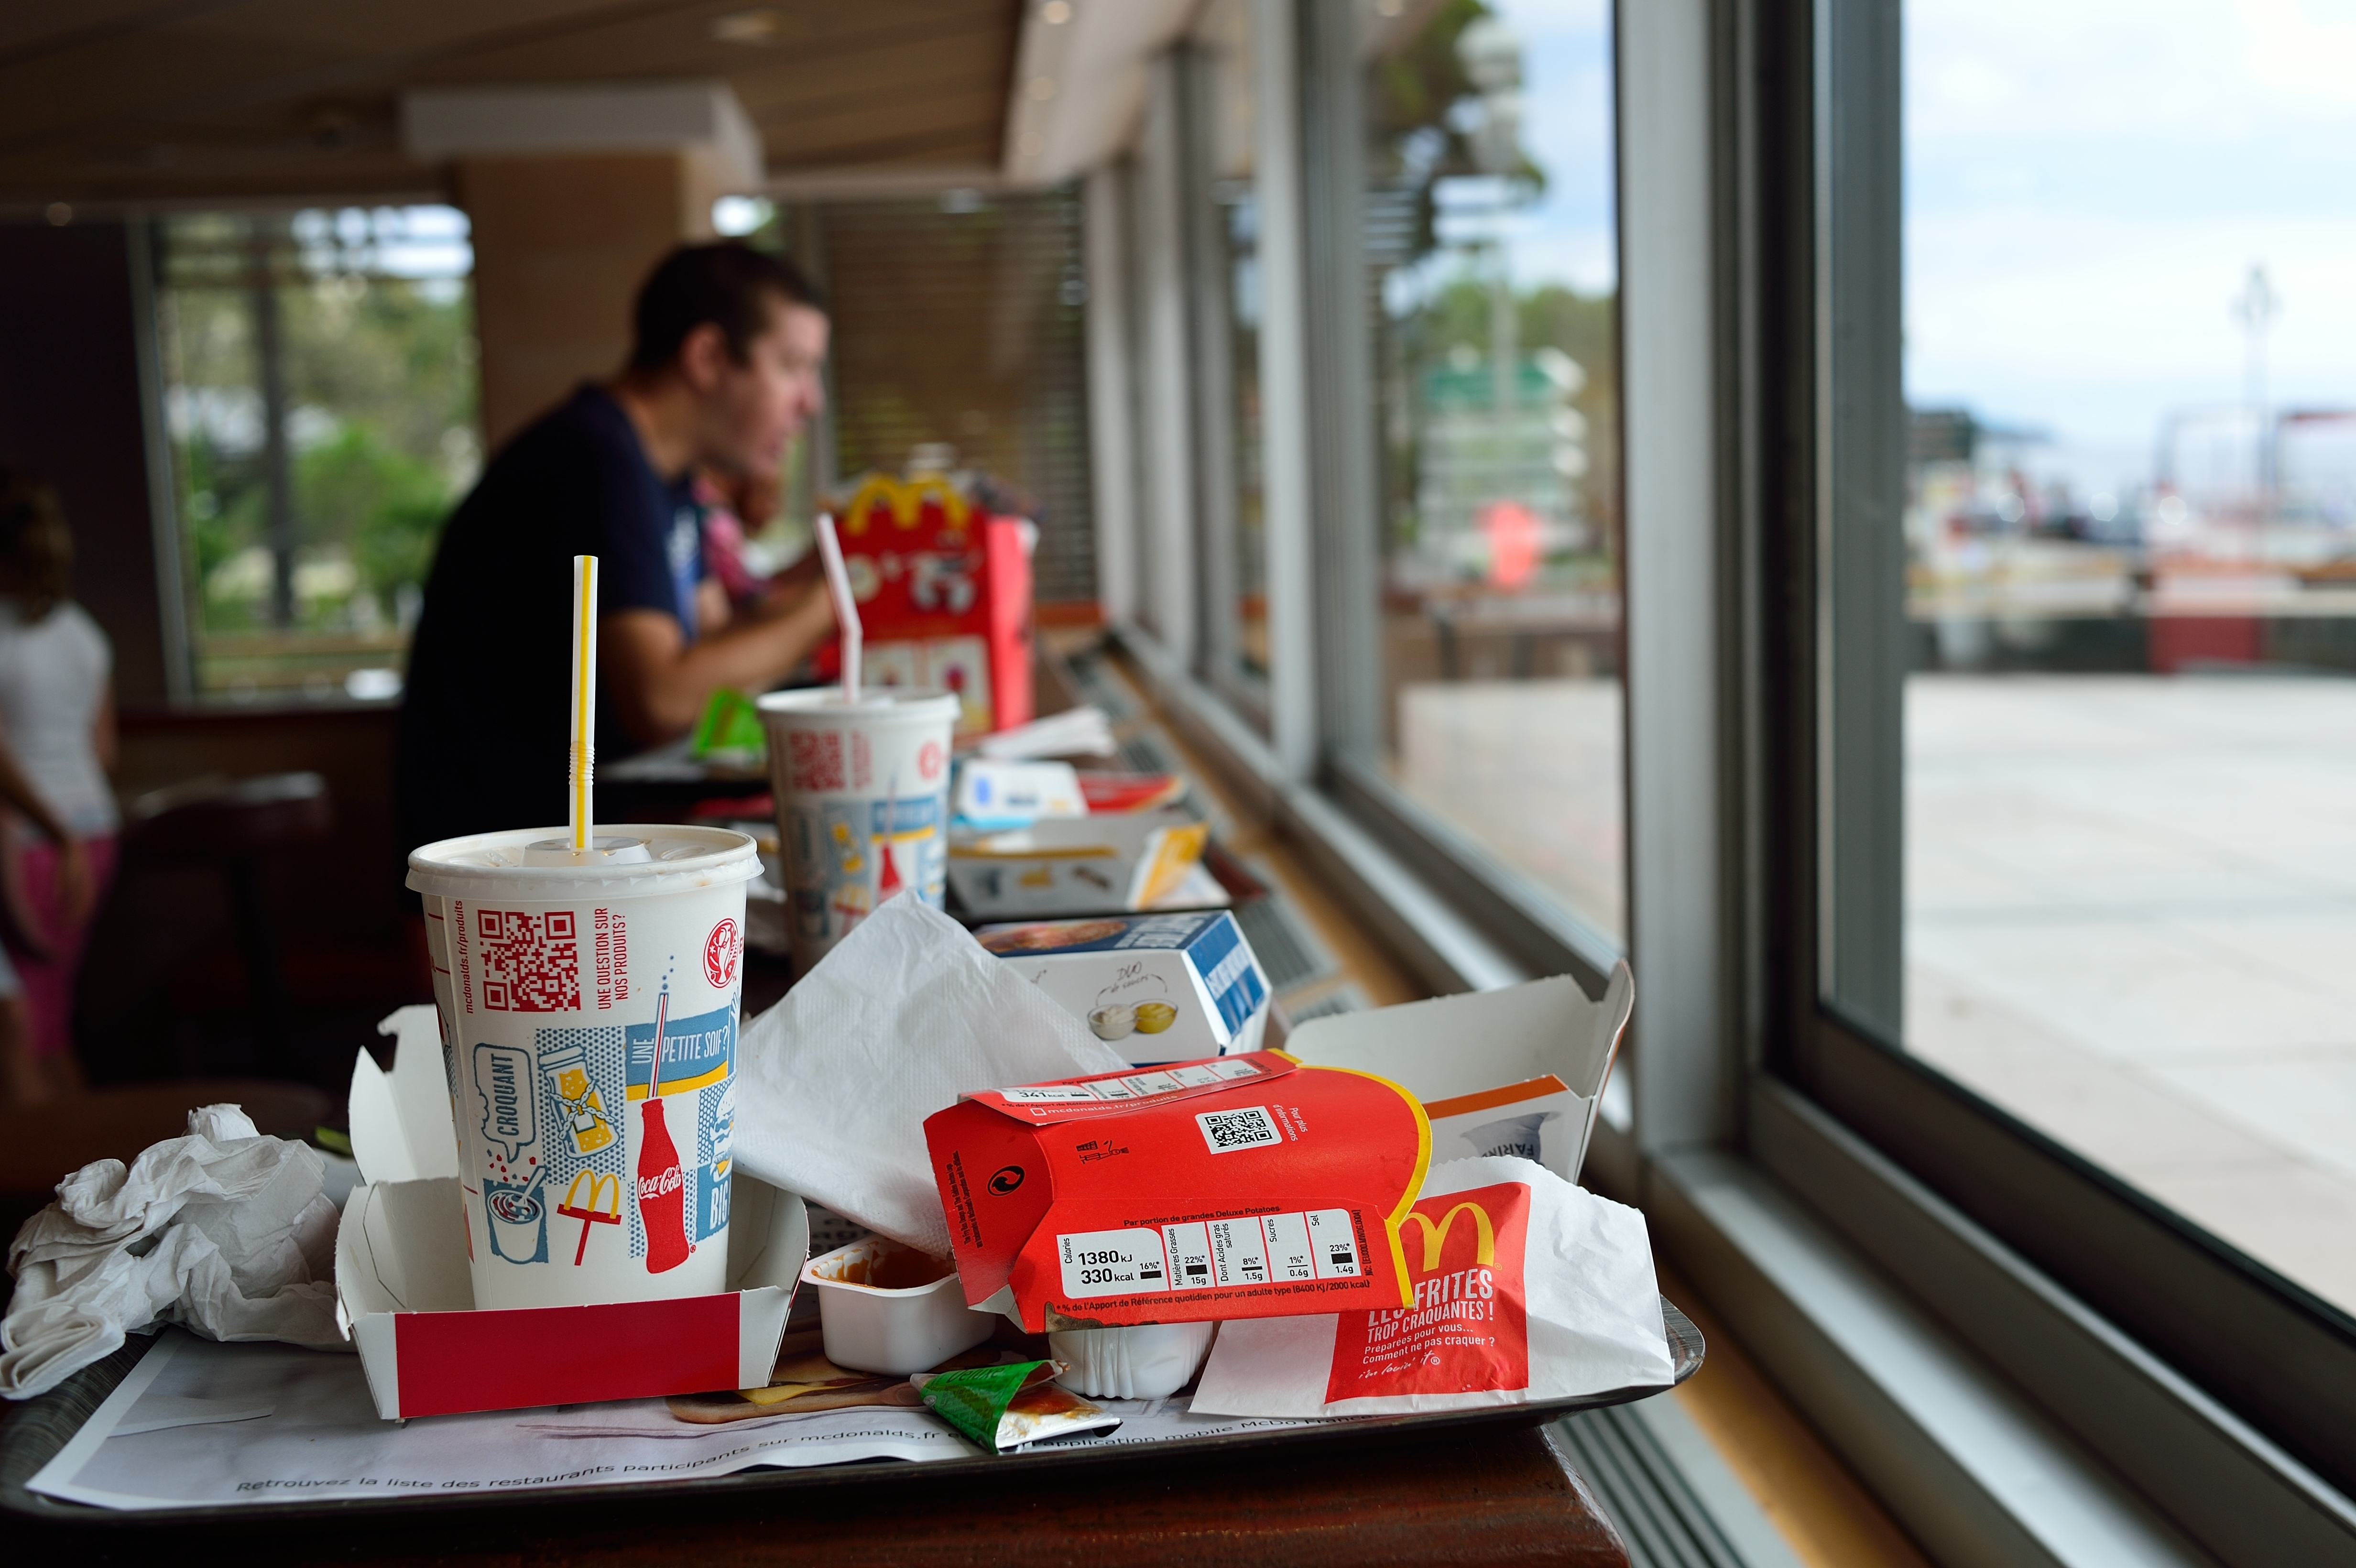 A brown tray full of used and crumpled McDonald's wrappers and cups is left on a window-facing counter top with a diner obscured in the background.